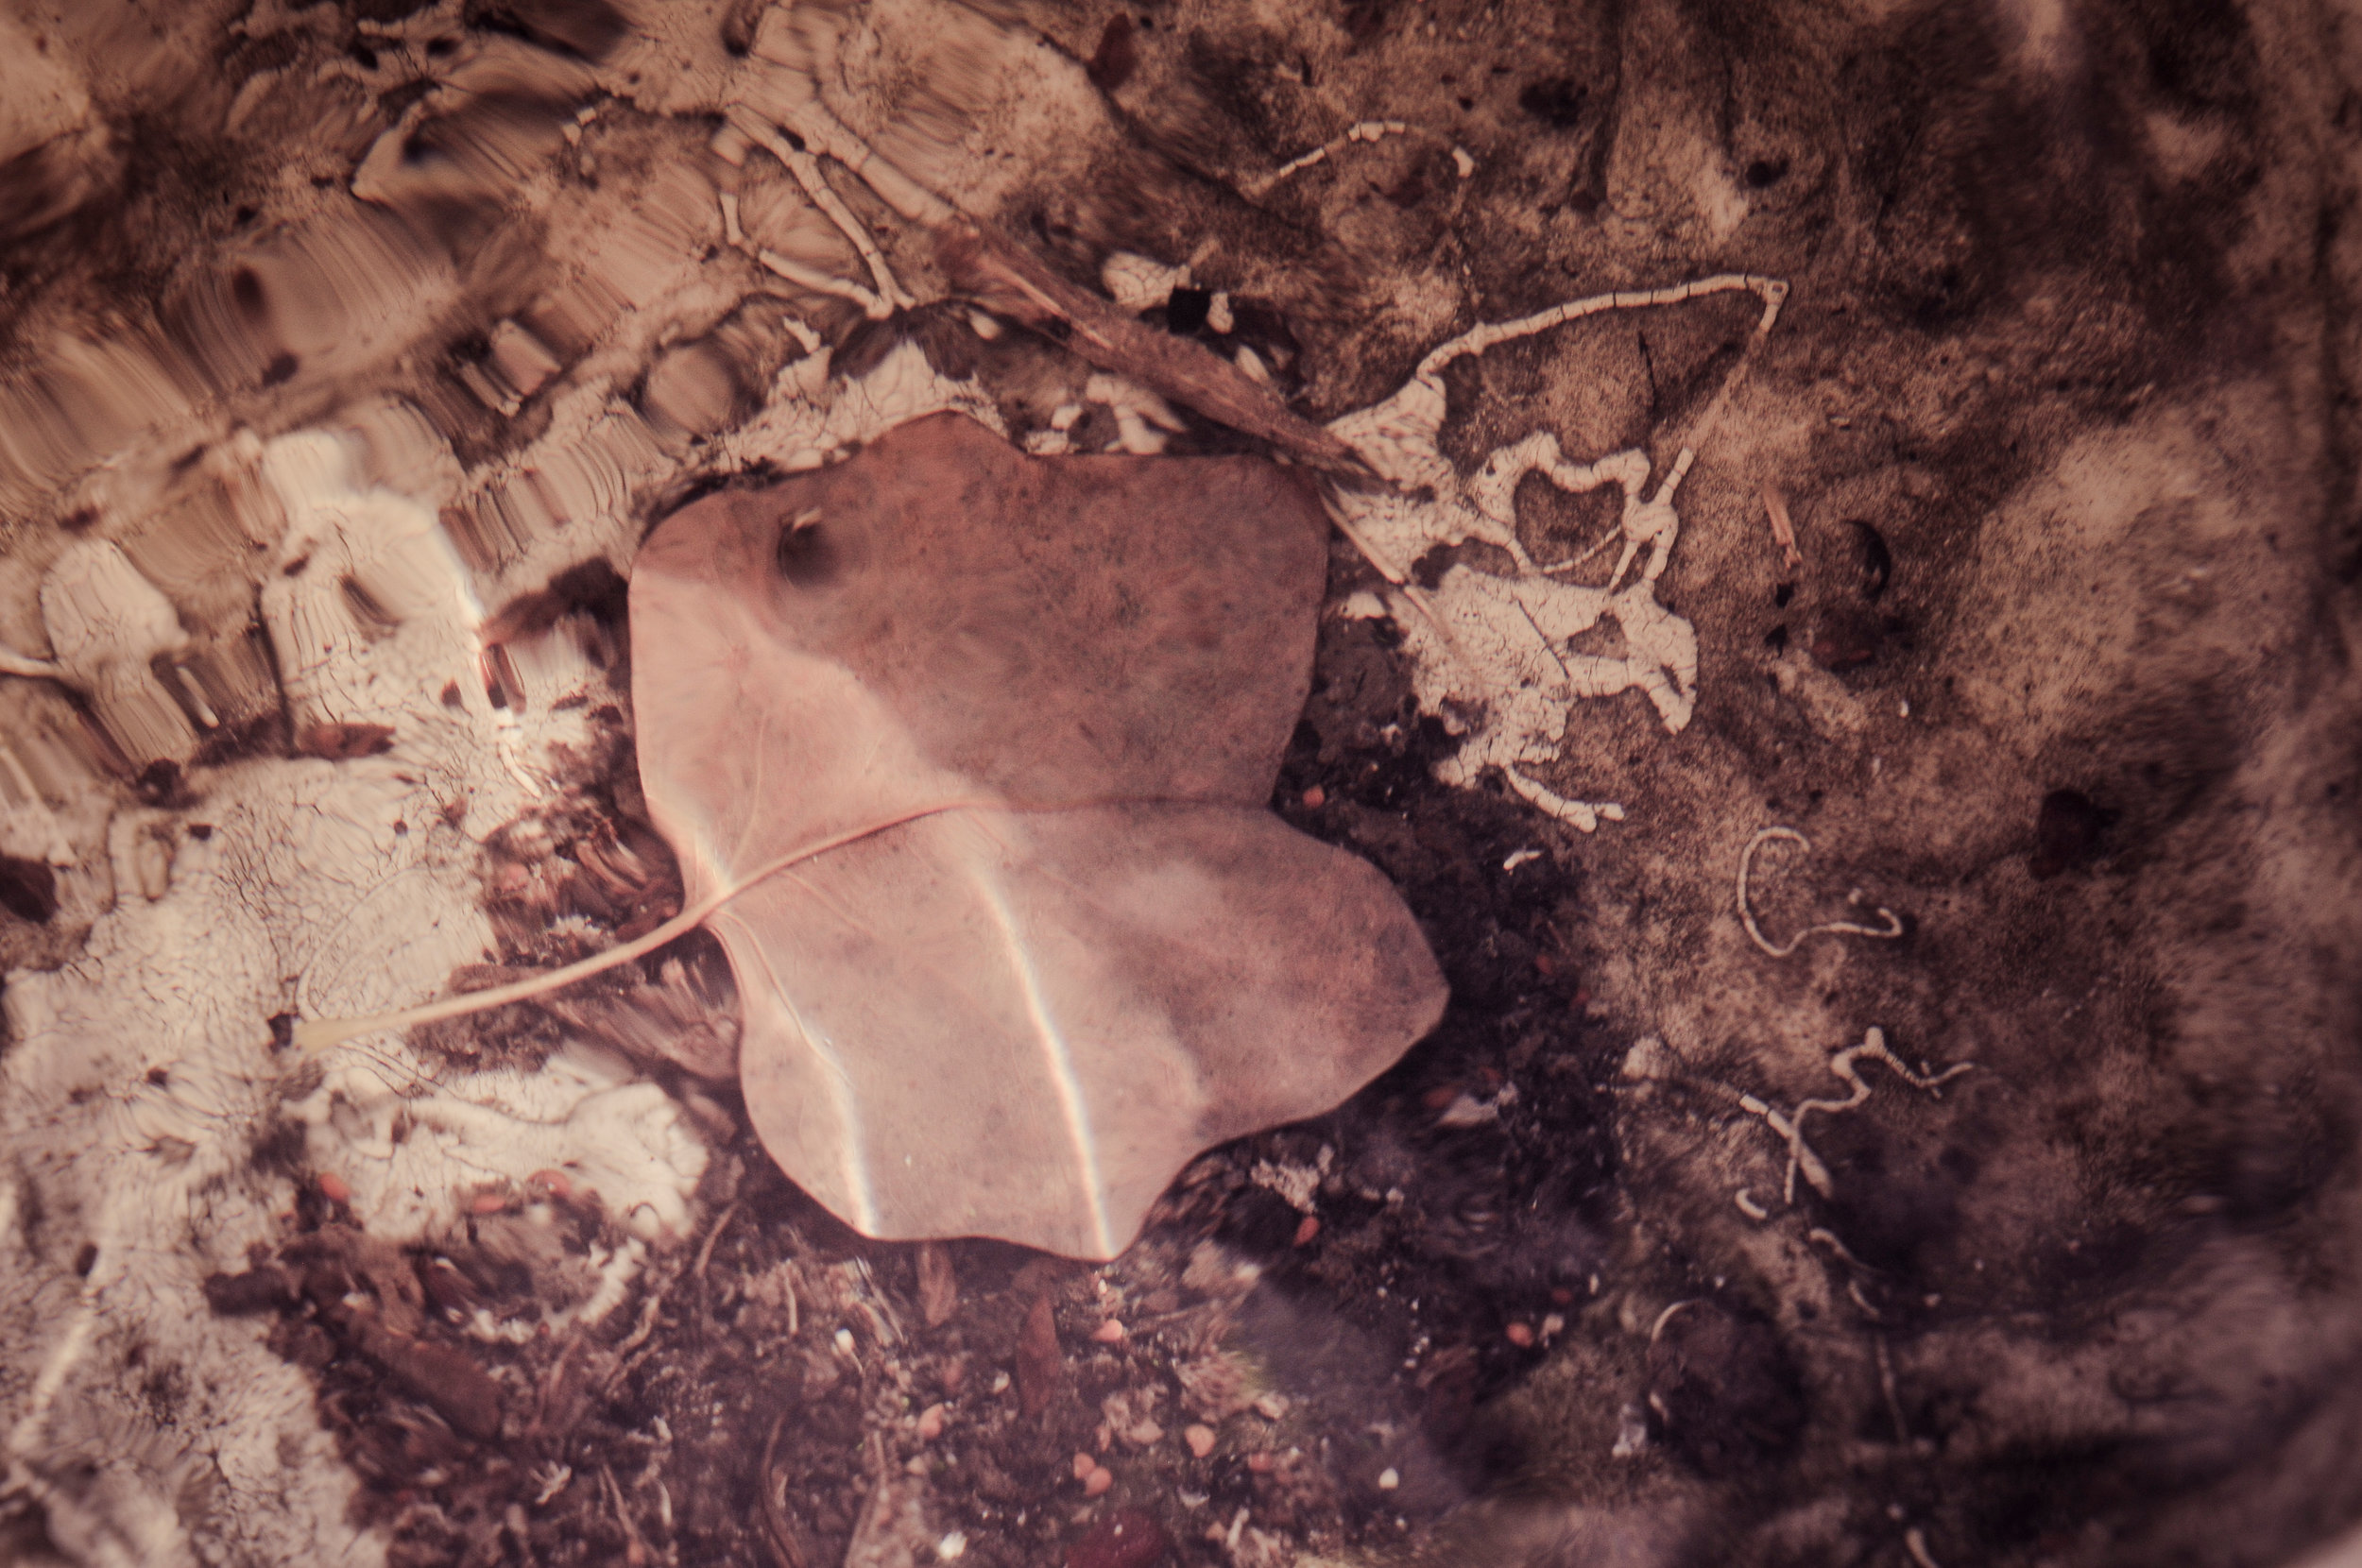 Leaf Drowned in a Slaveholder's Garden Urn Photo: Rose Anderson, 2018